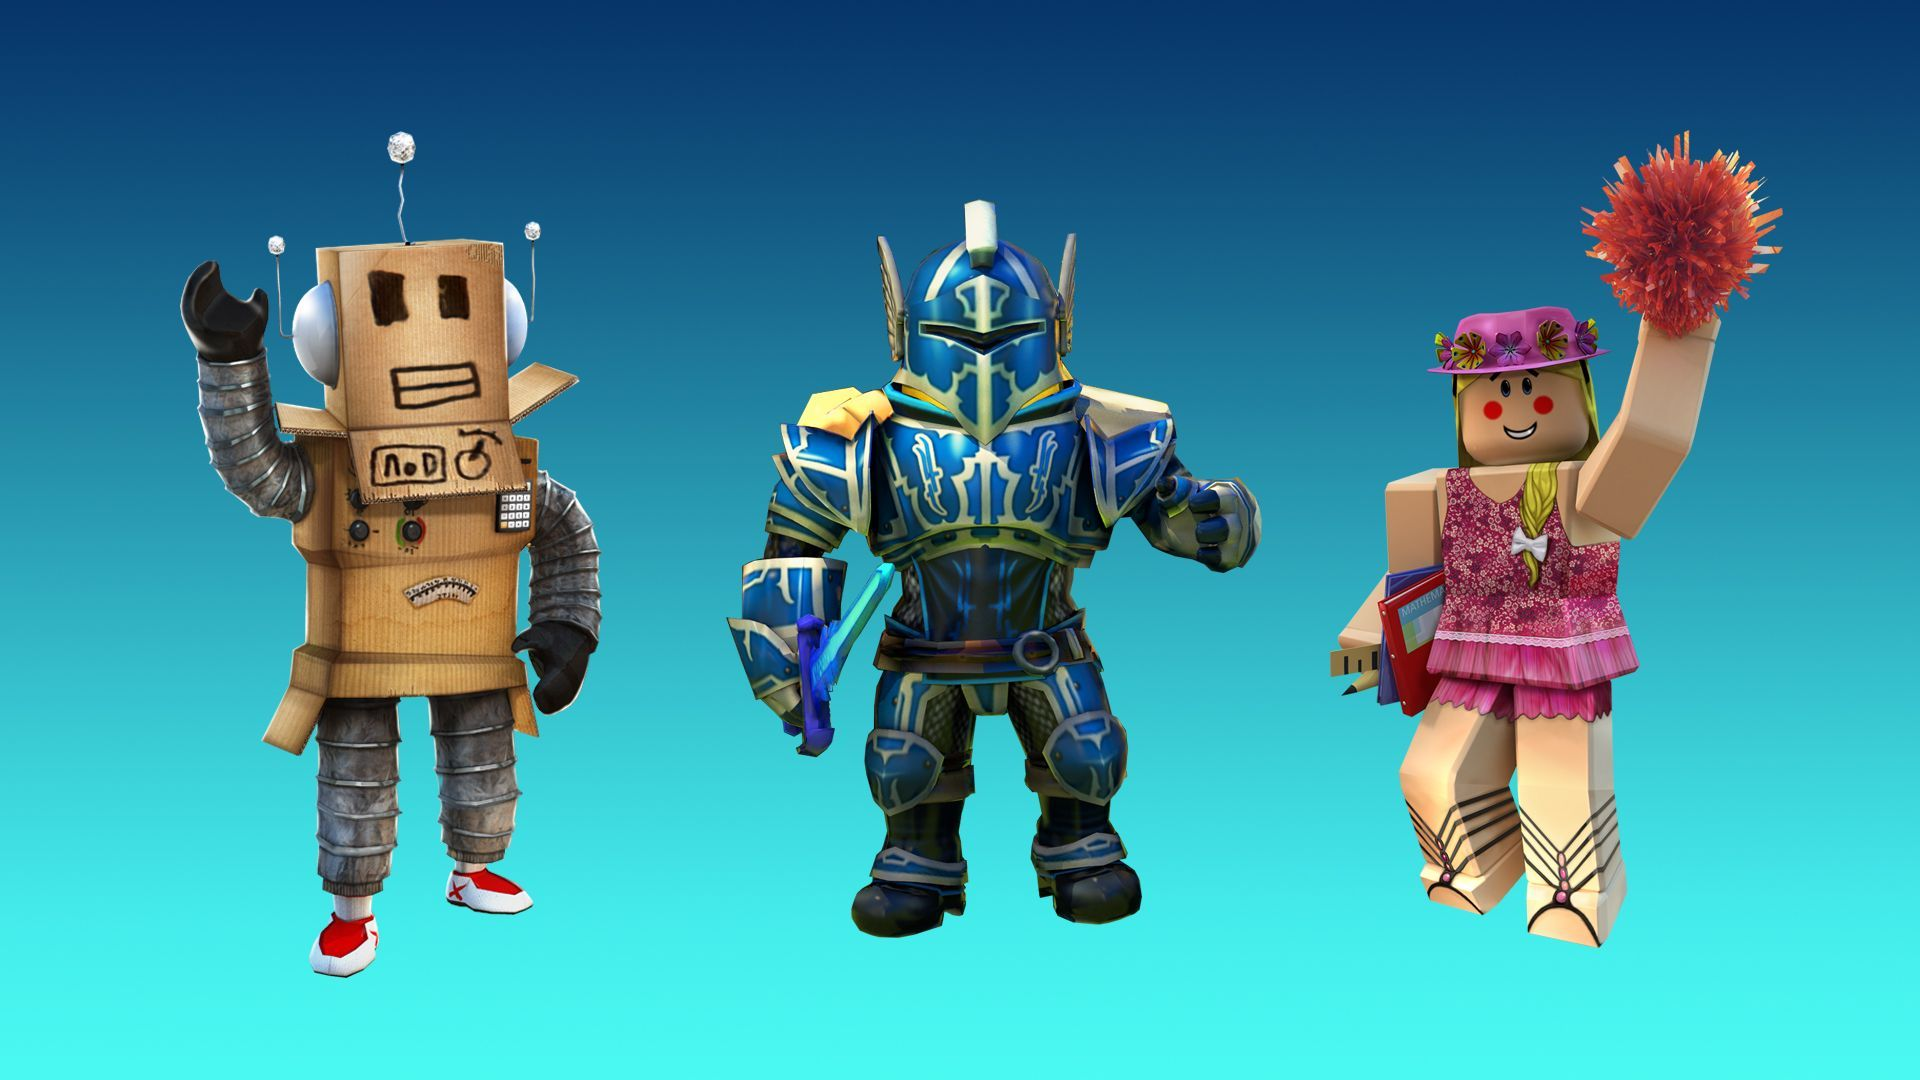 cool roblox images